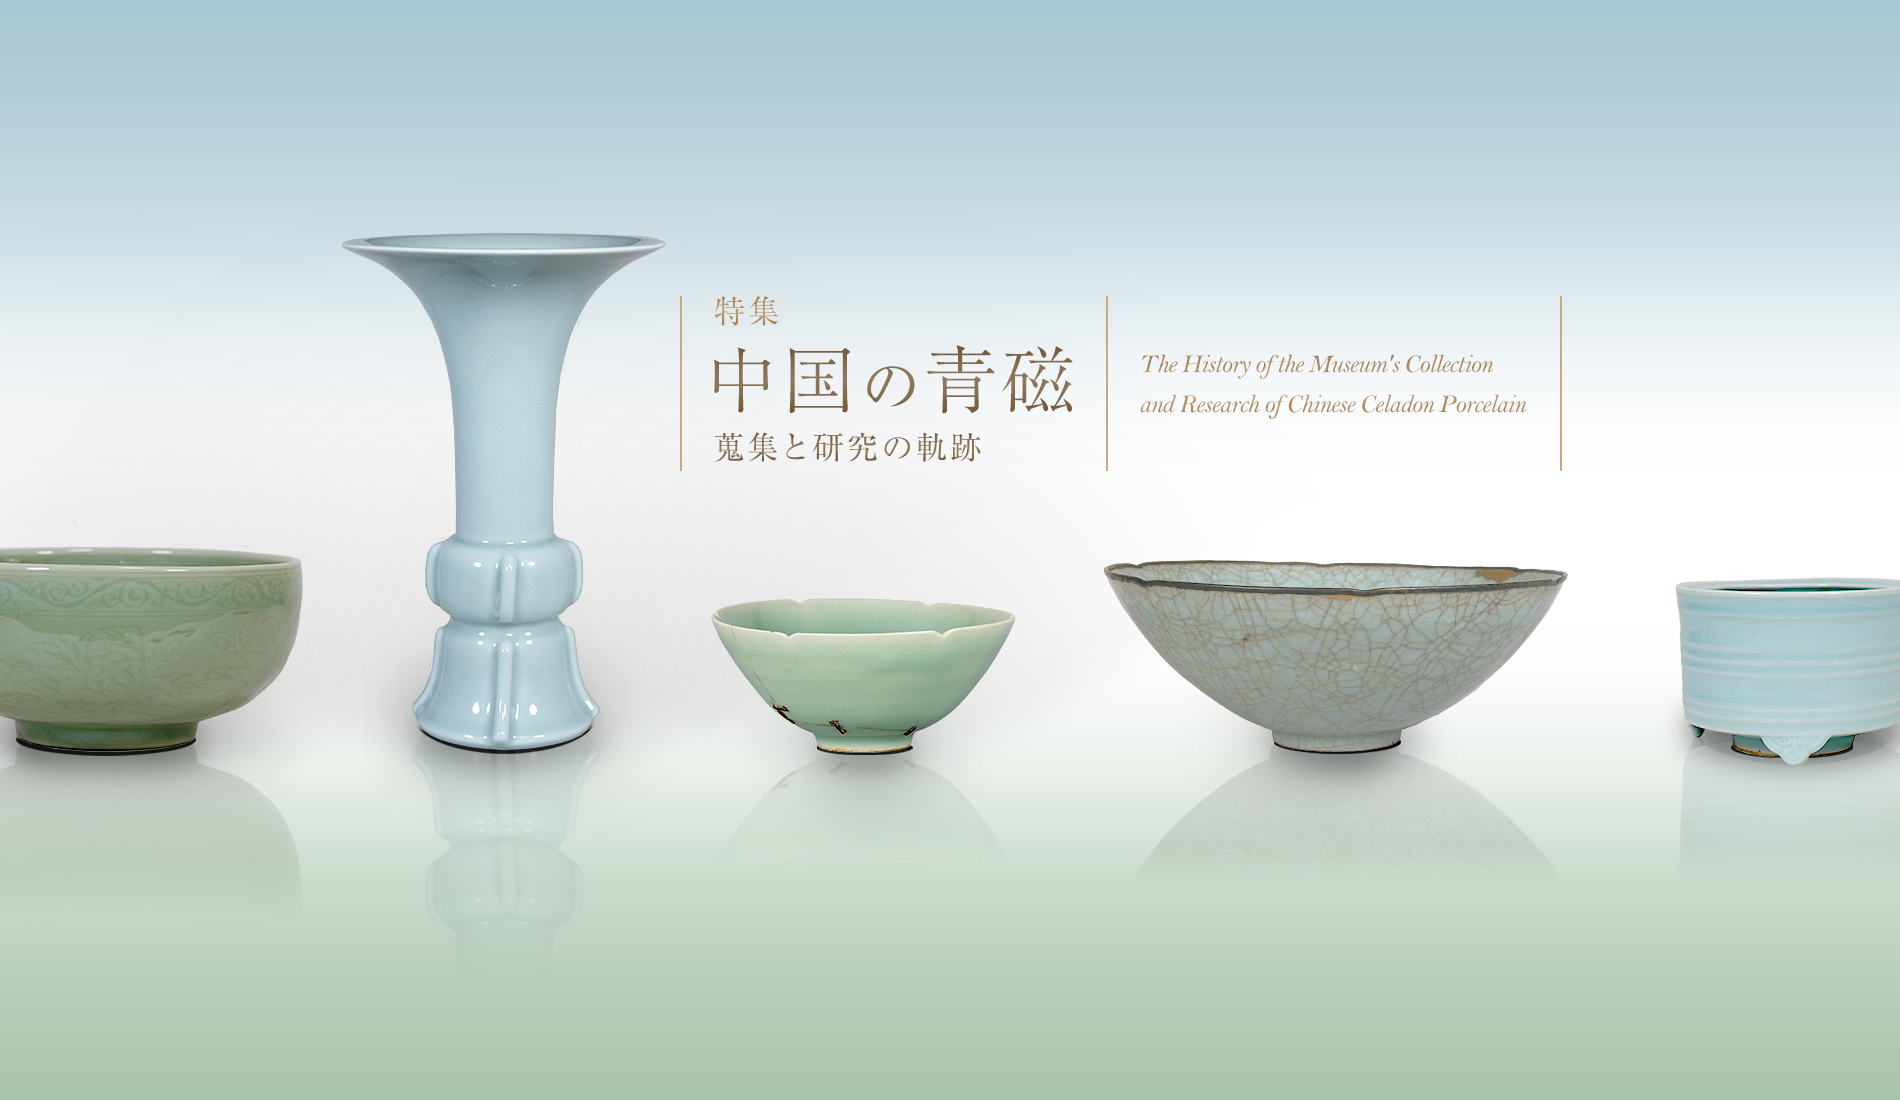 The History of the Museum's Collection and Research of Chinese Celadon Porcelain